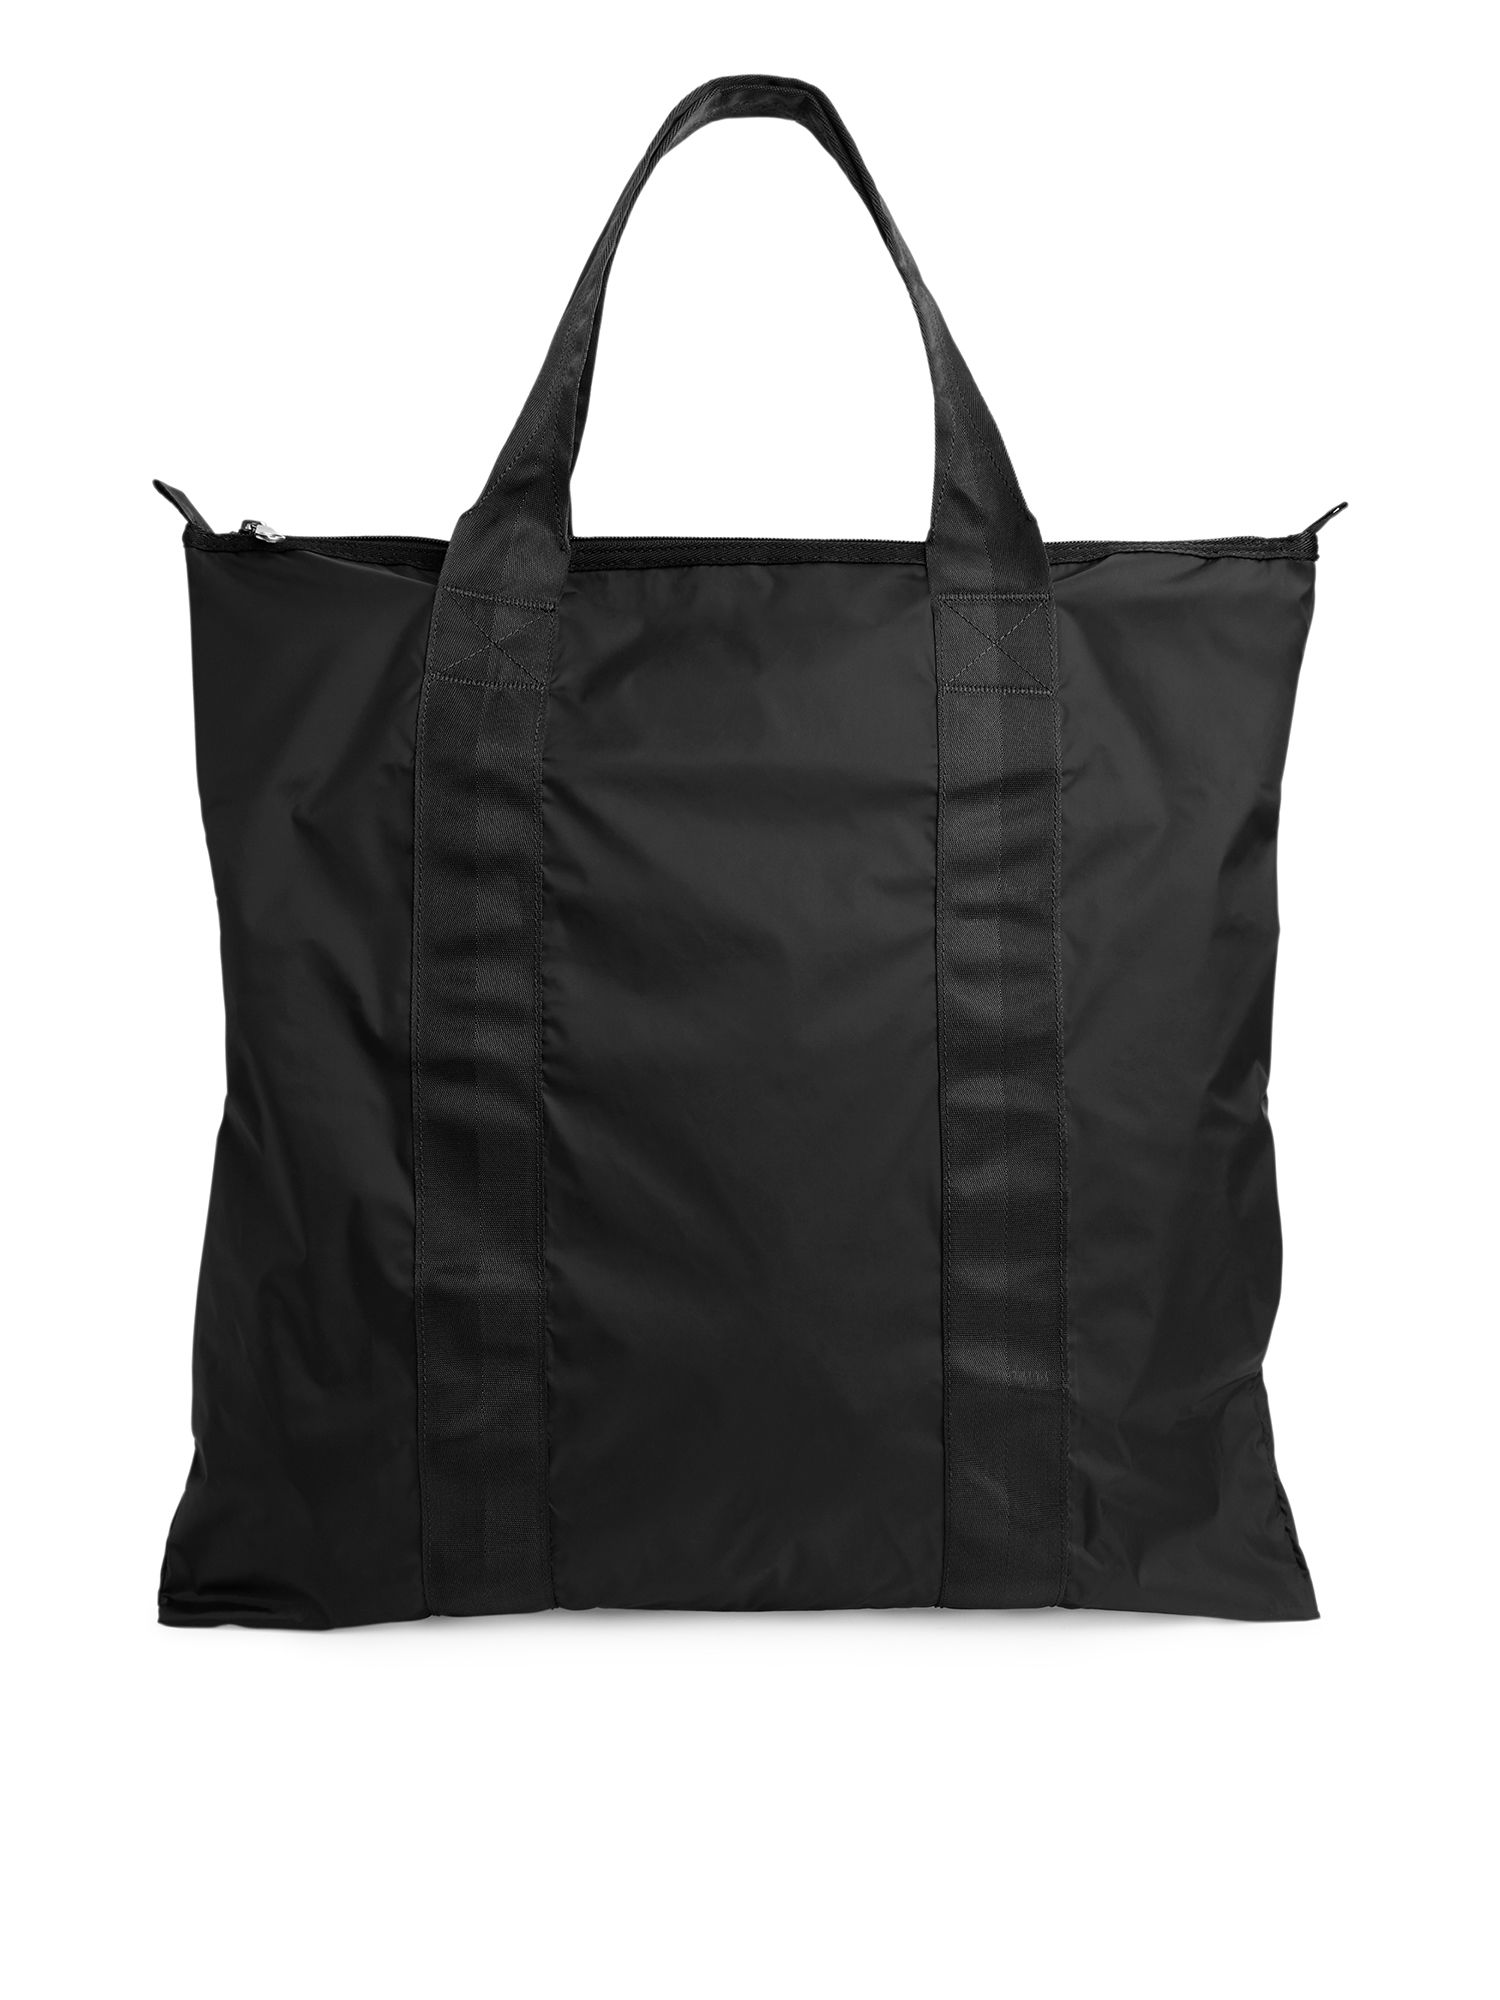 Fabric Swatch image of Arket packable tote in black